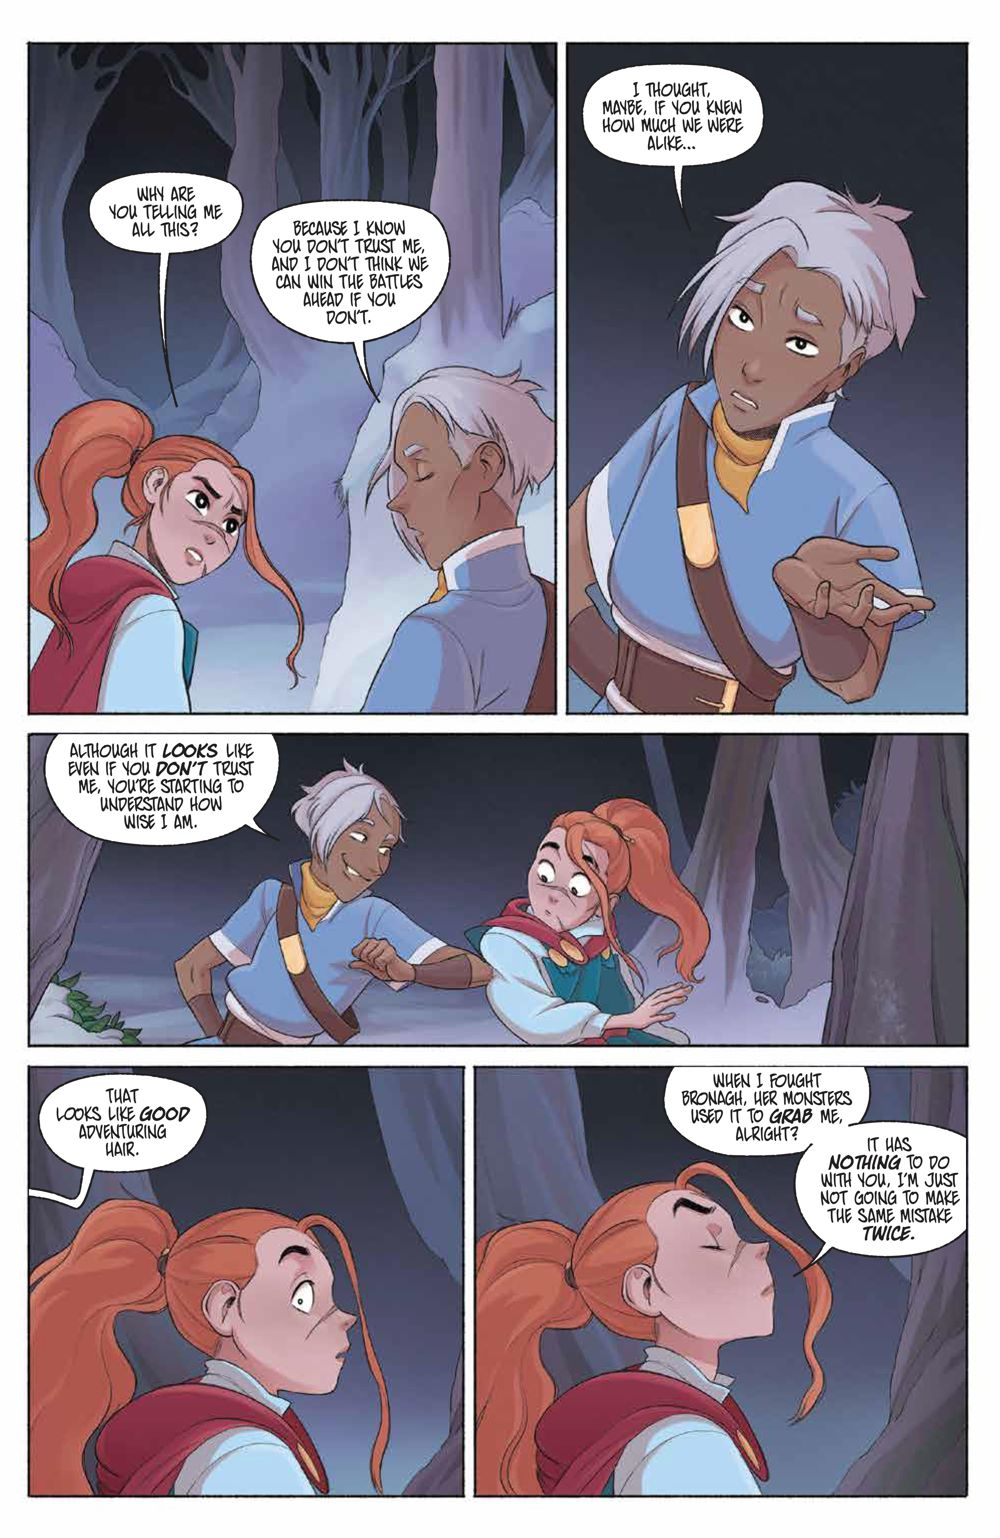 LastWitch_005_PRESS_8 ComicList Previews: THE LAST WITCH #5 (OF 5)